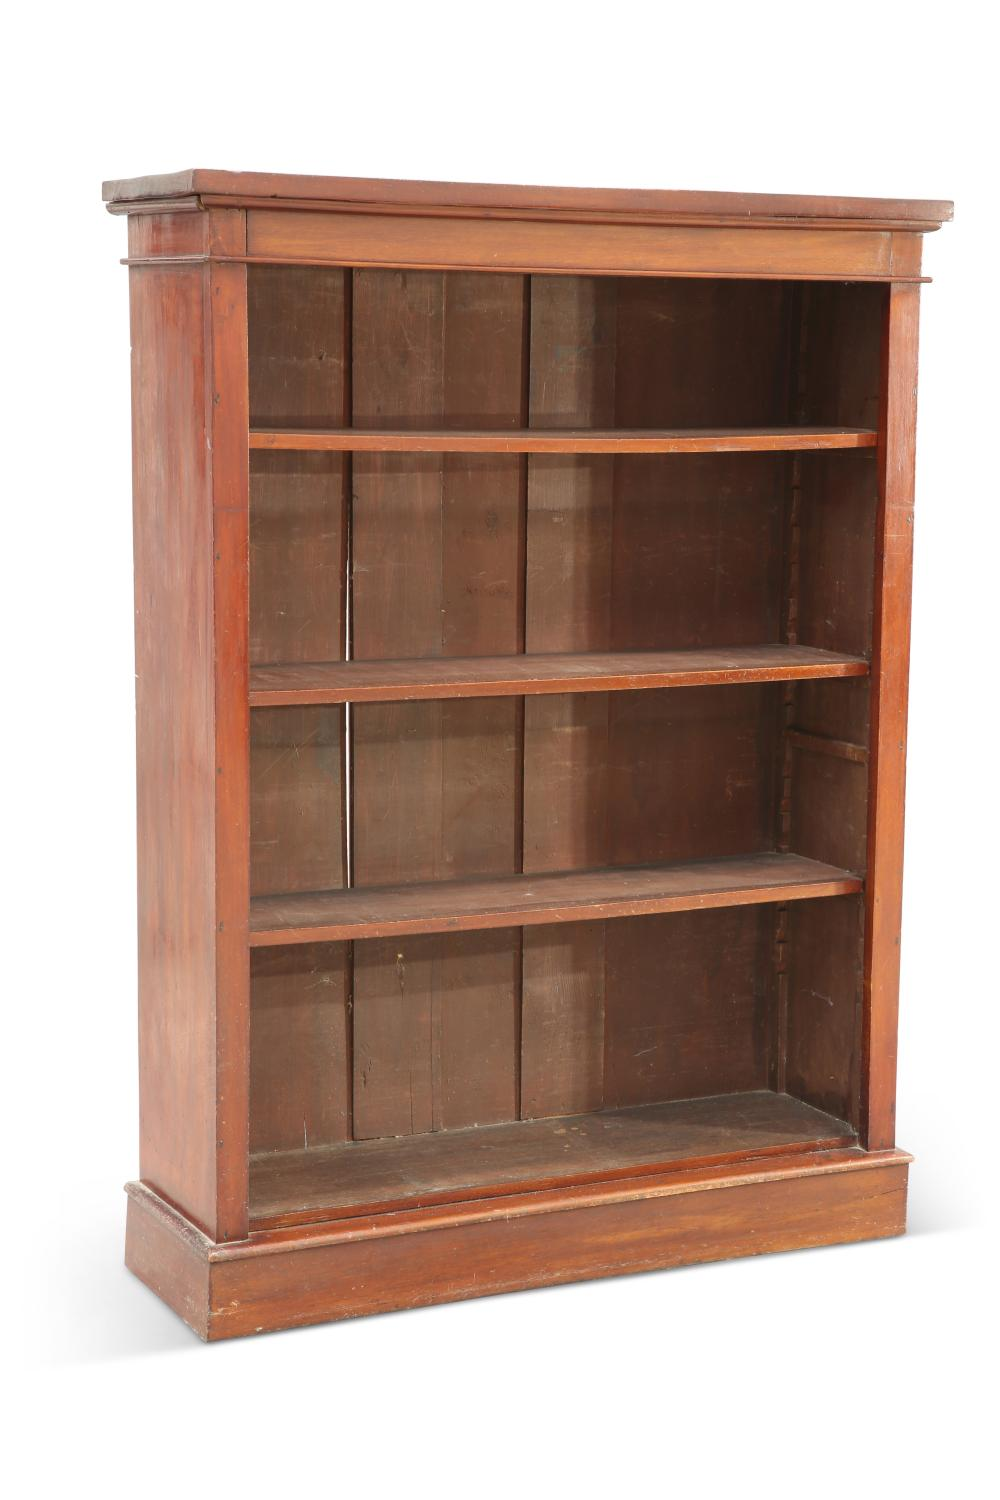 A VICTORIAN MAHOGANY OPEN BOOKCASE, with three adjustable shelves, raised o